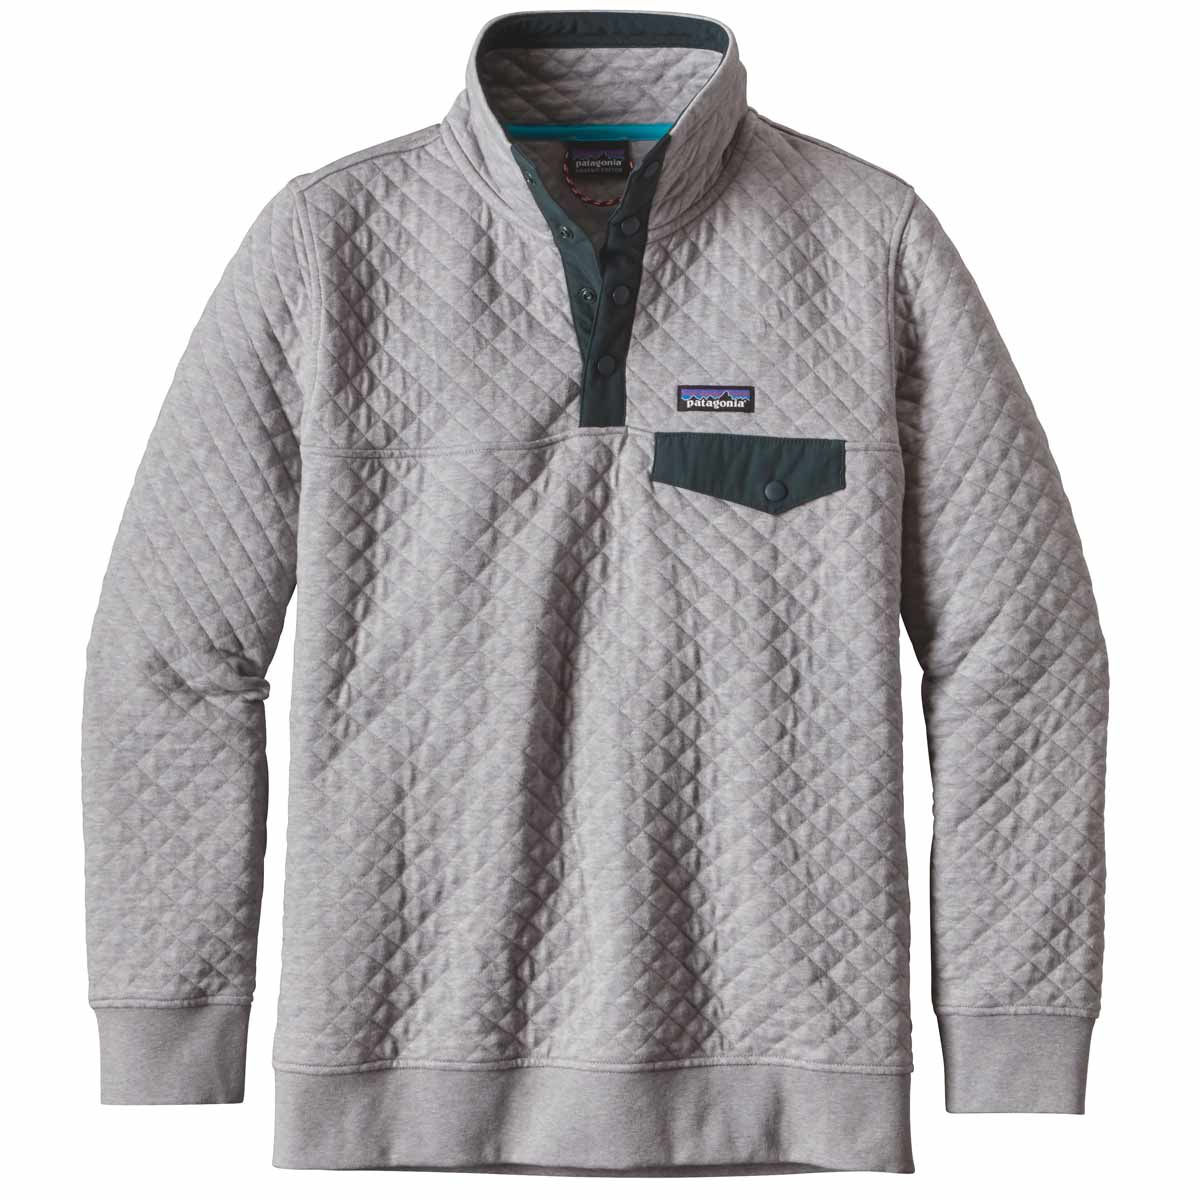 Patagonia Women S Cotton Quilt Snap T Pullover Jacket On